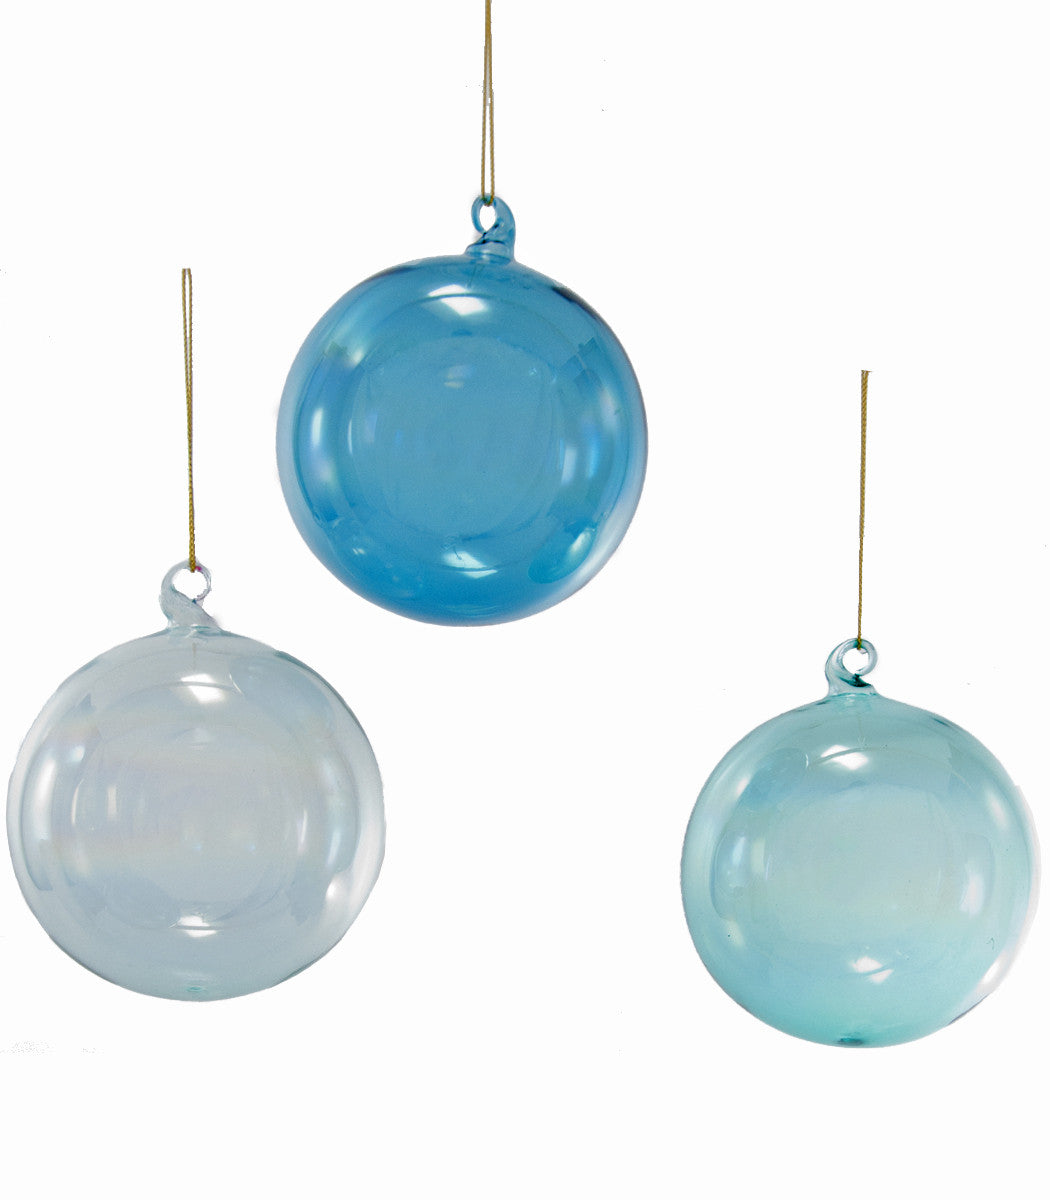 Irridescent Blue Glass Ball Ornaments